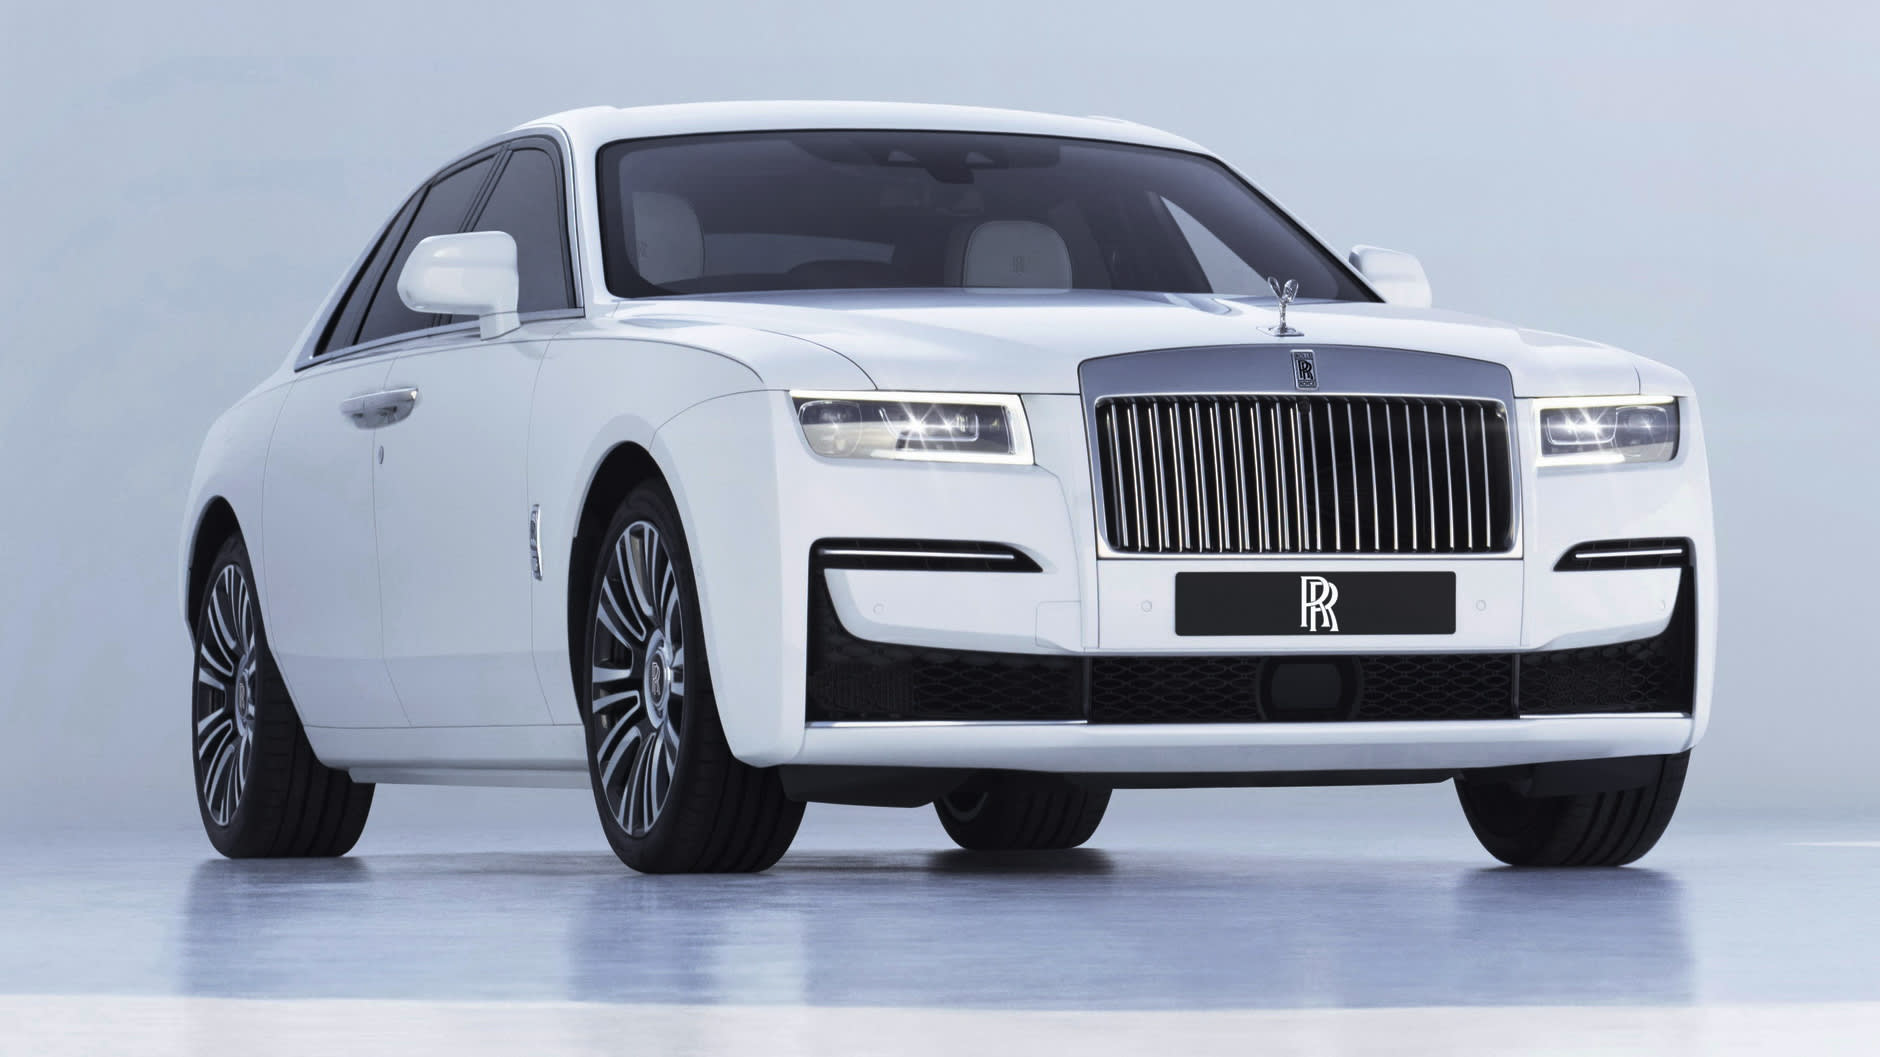 2021 Rolls Royce Ghost Revealed Caradvice